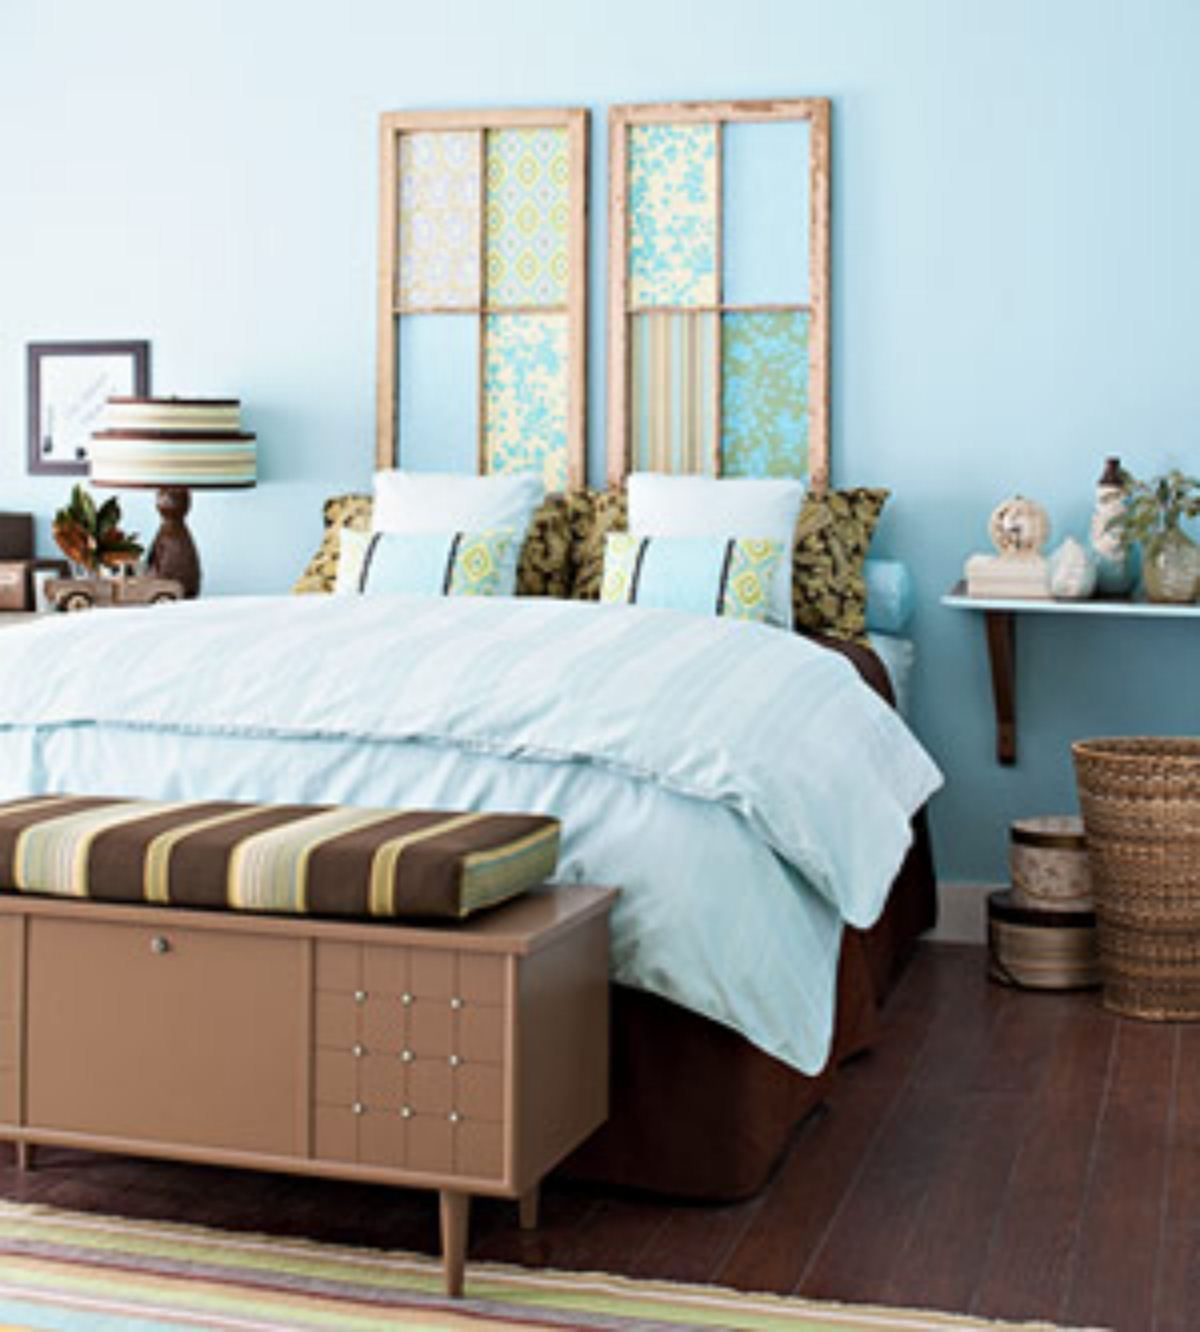 Window headboard ideas  special  bedrooms  pinterest  bedrooms master bedroom and